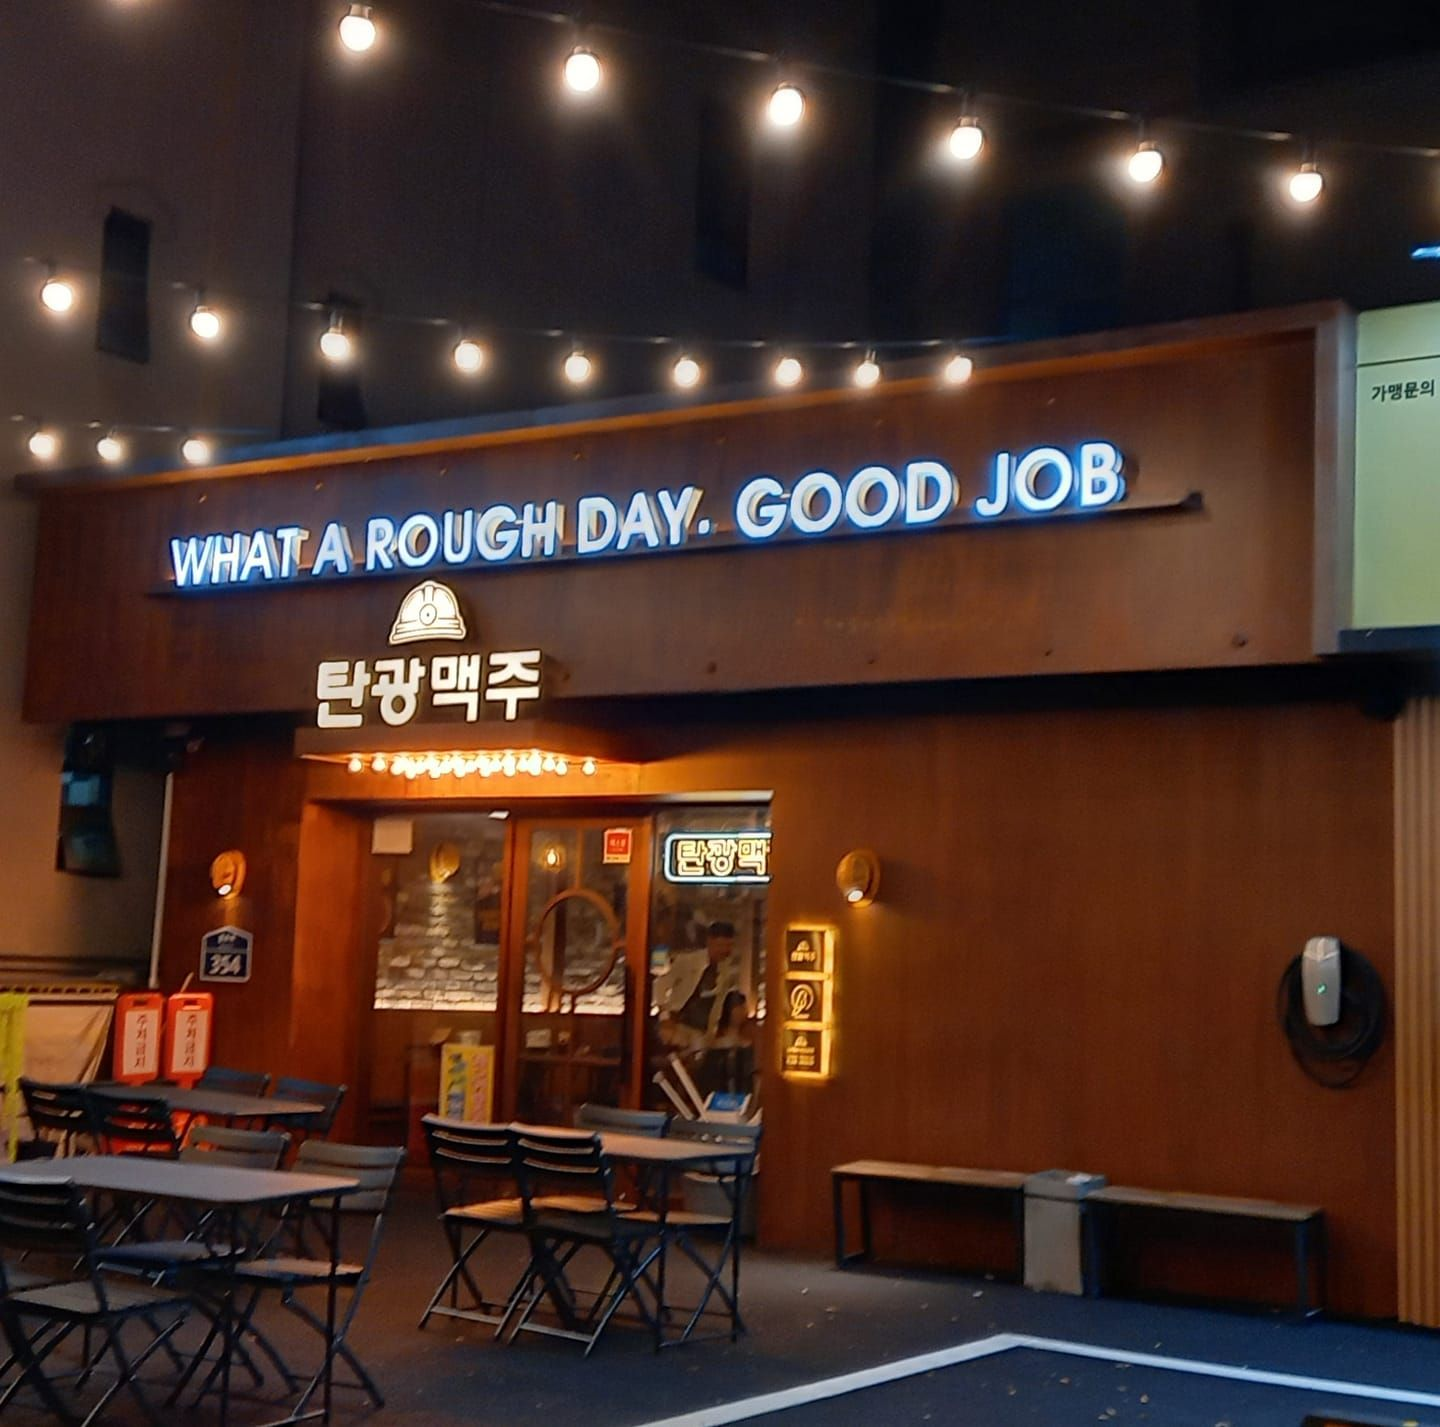 Koreans have some fantastic names for businesses. Probably the best name for a bar.